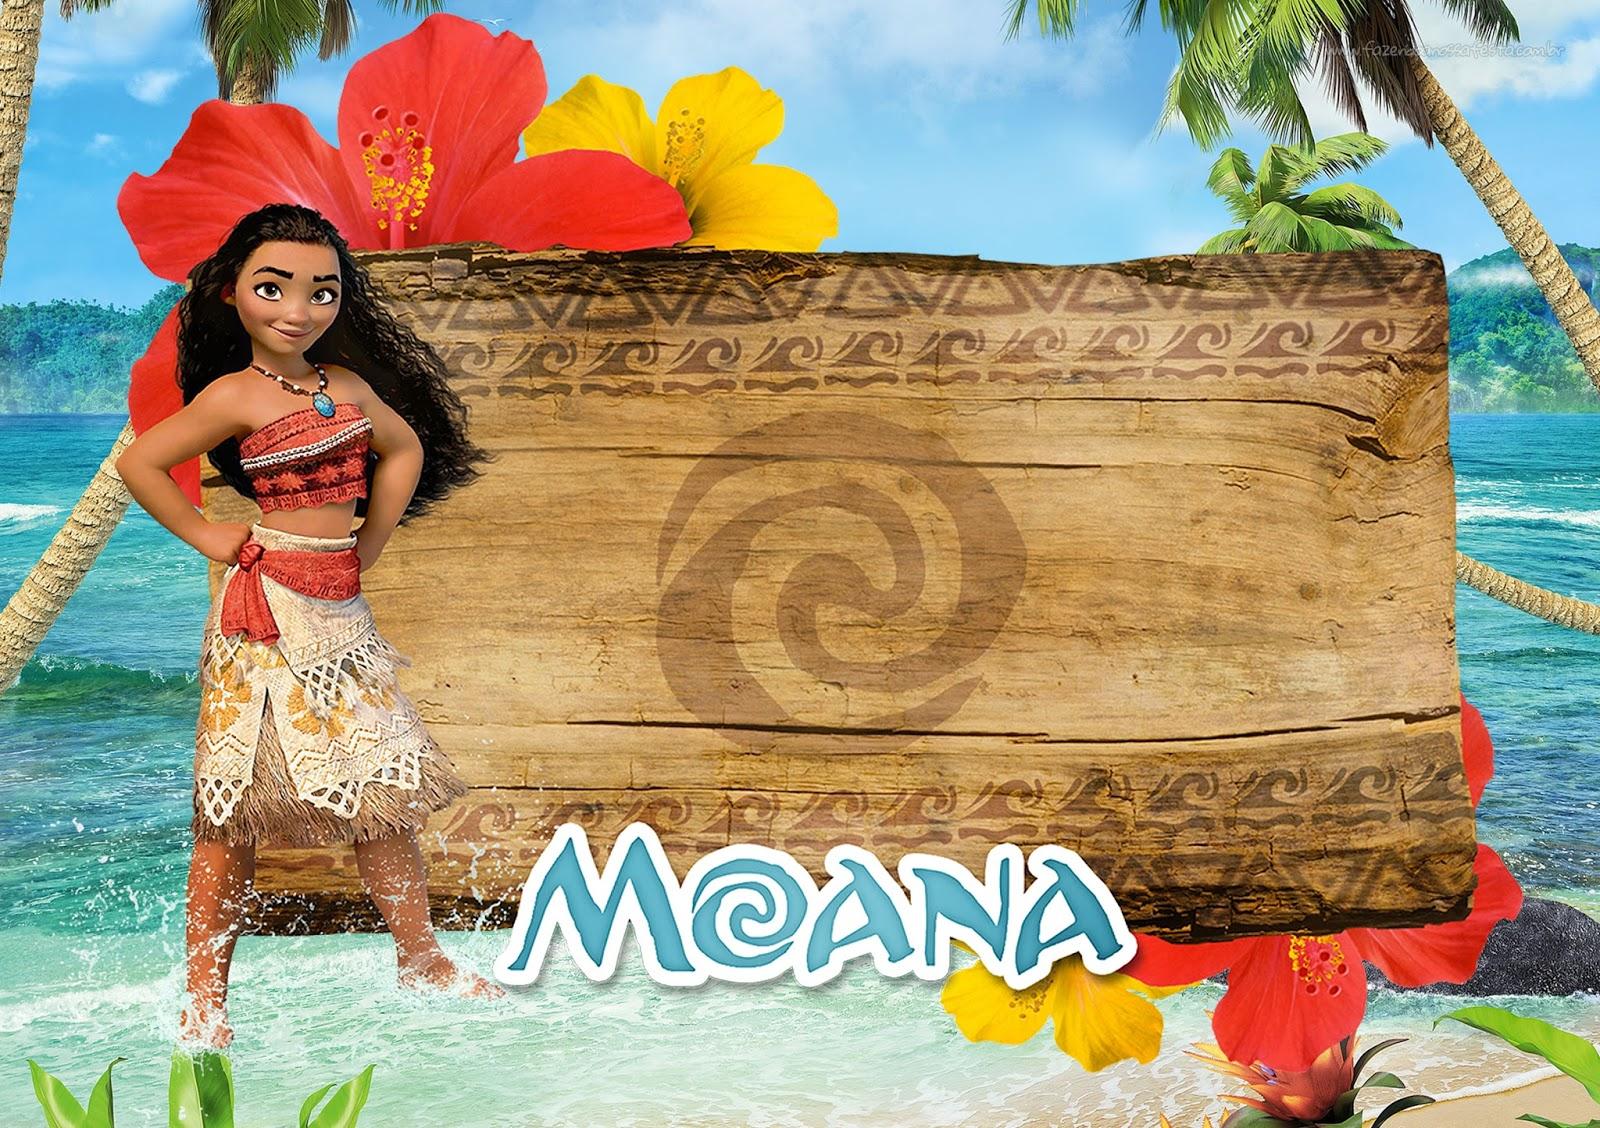 photograph relating to Moana Printable Invitations known as Moana: Totally free Printable Invites. - Oh My Fiesta! inside english